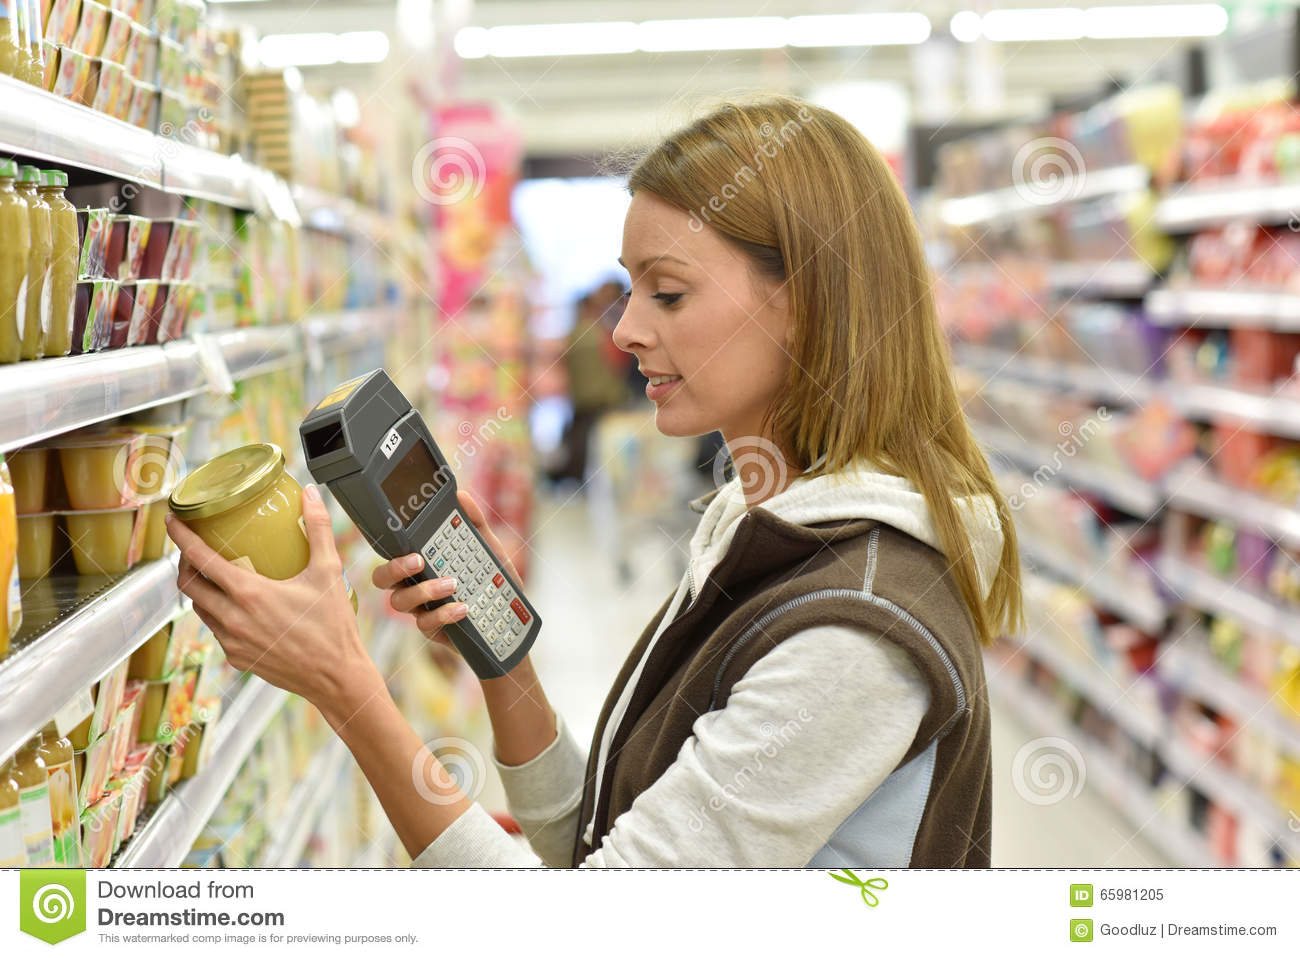 Sales Assistant In Grocery Store Scanning Products Stock Image  Image of machine reading 65981205